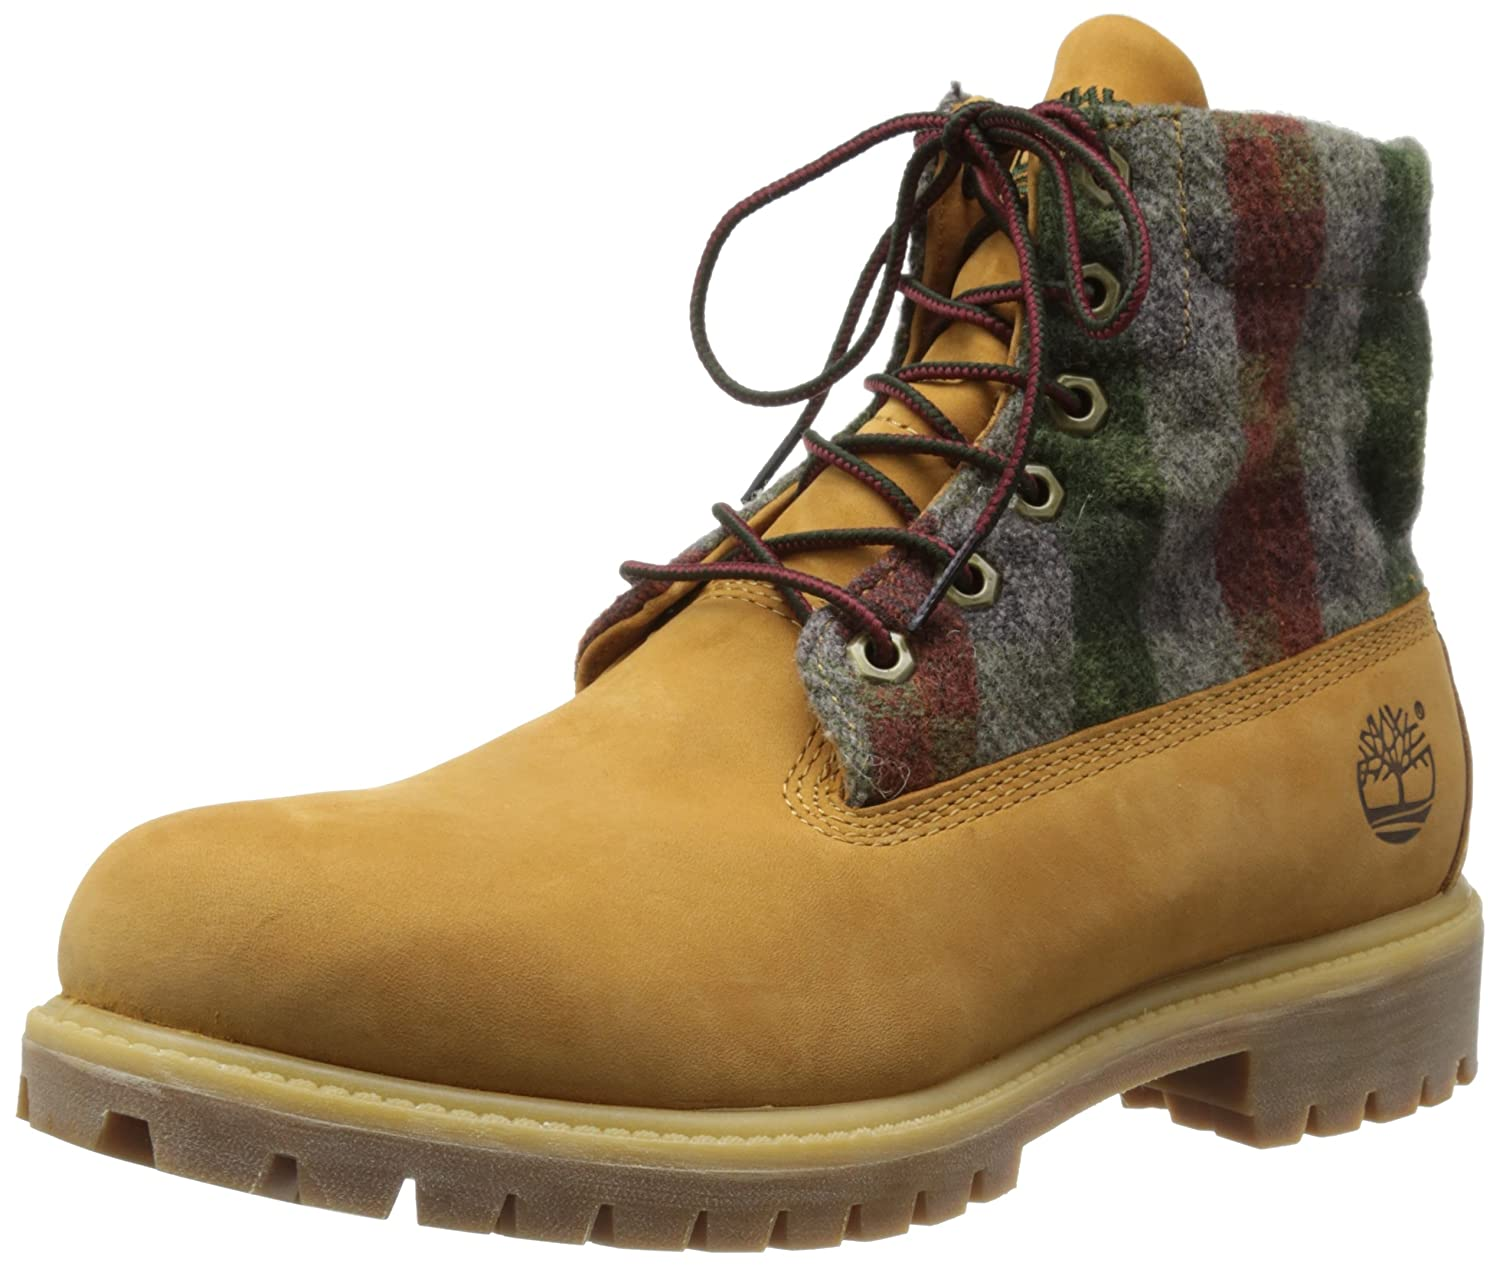 659035a62b2 Timberland Mens Af Roll Top Boots: Amazon.co.uk: Shoes & Bags